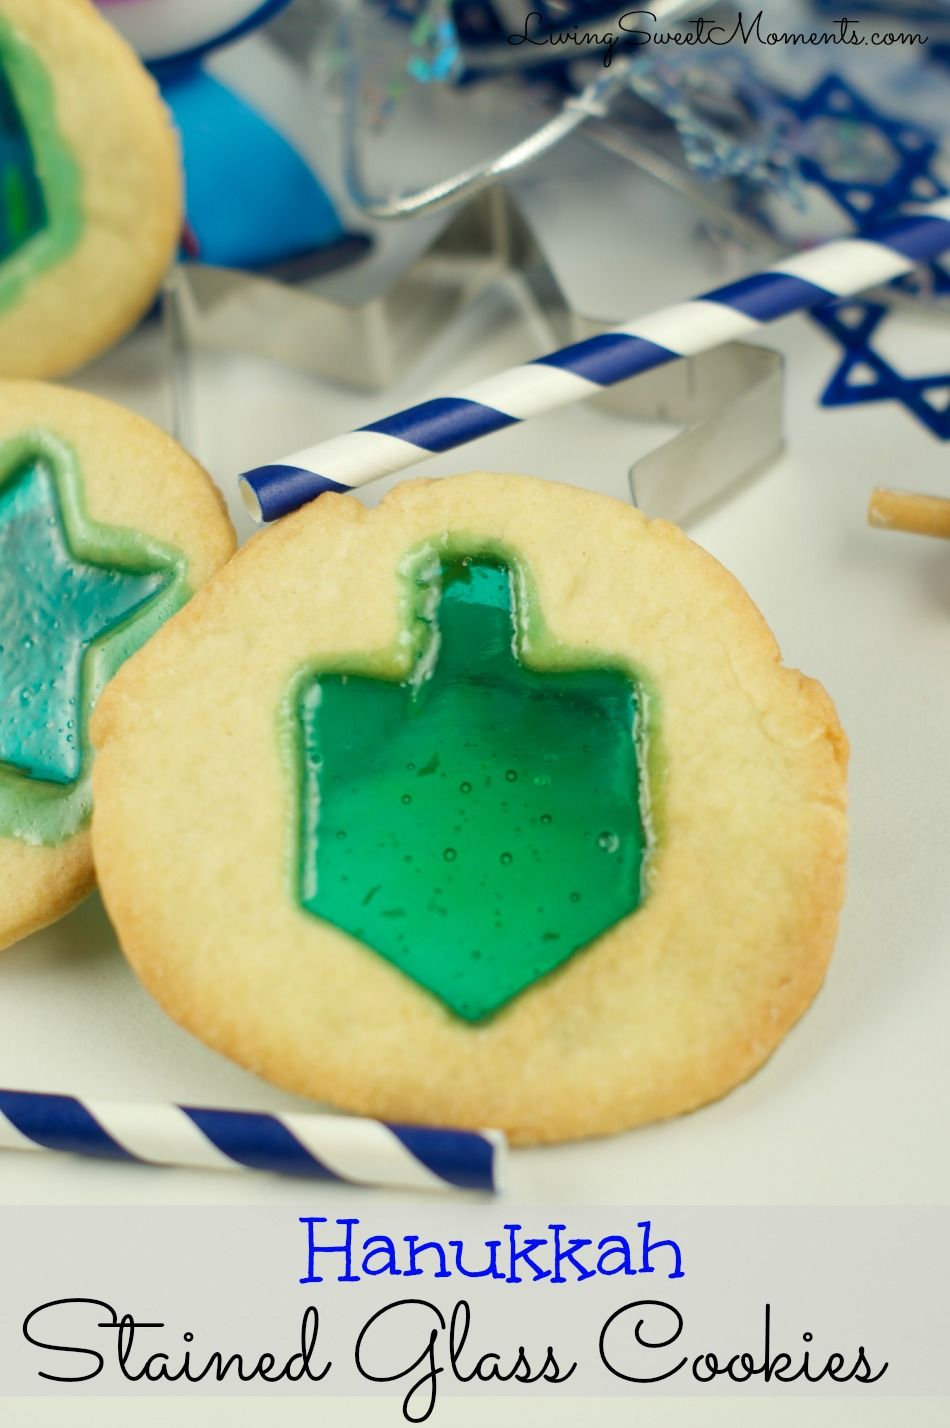 Delicious Hanukkah stained glass cookies. So easy to make and fun with kids! Create this delicious effect in few easy steps. Sweet, crumbly and oh so yummy.